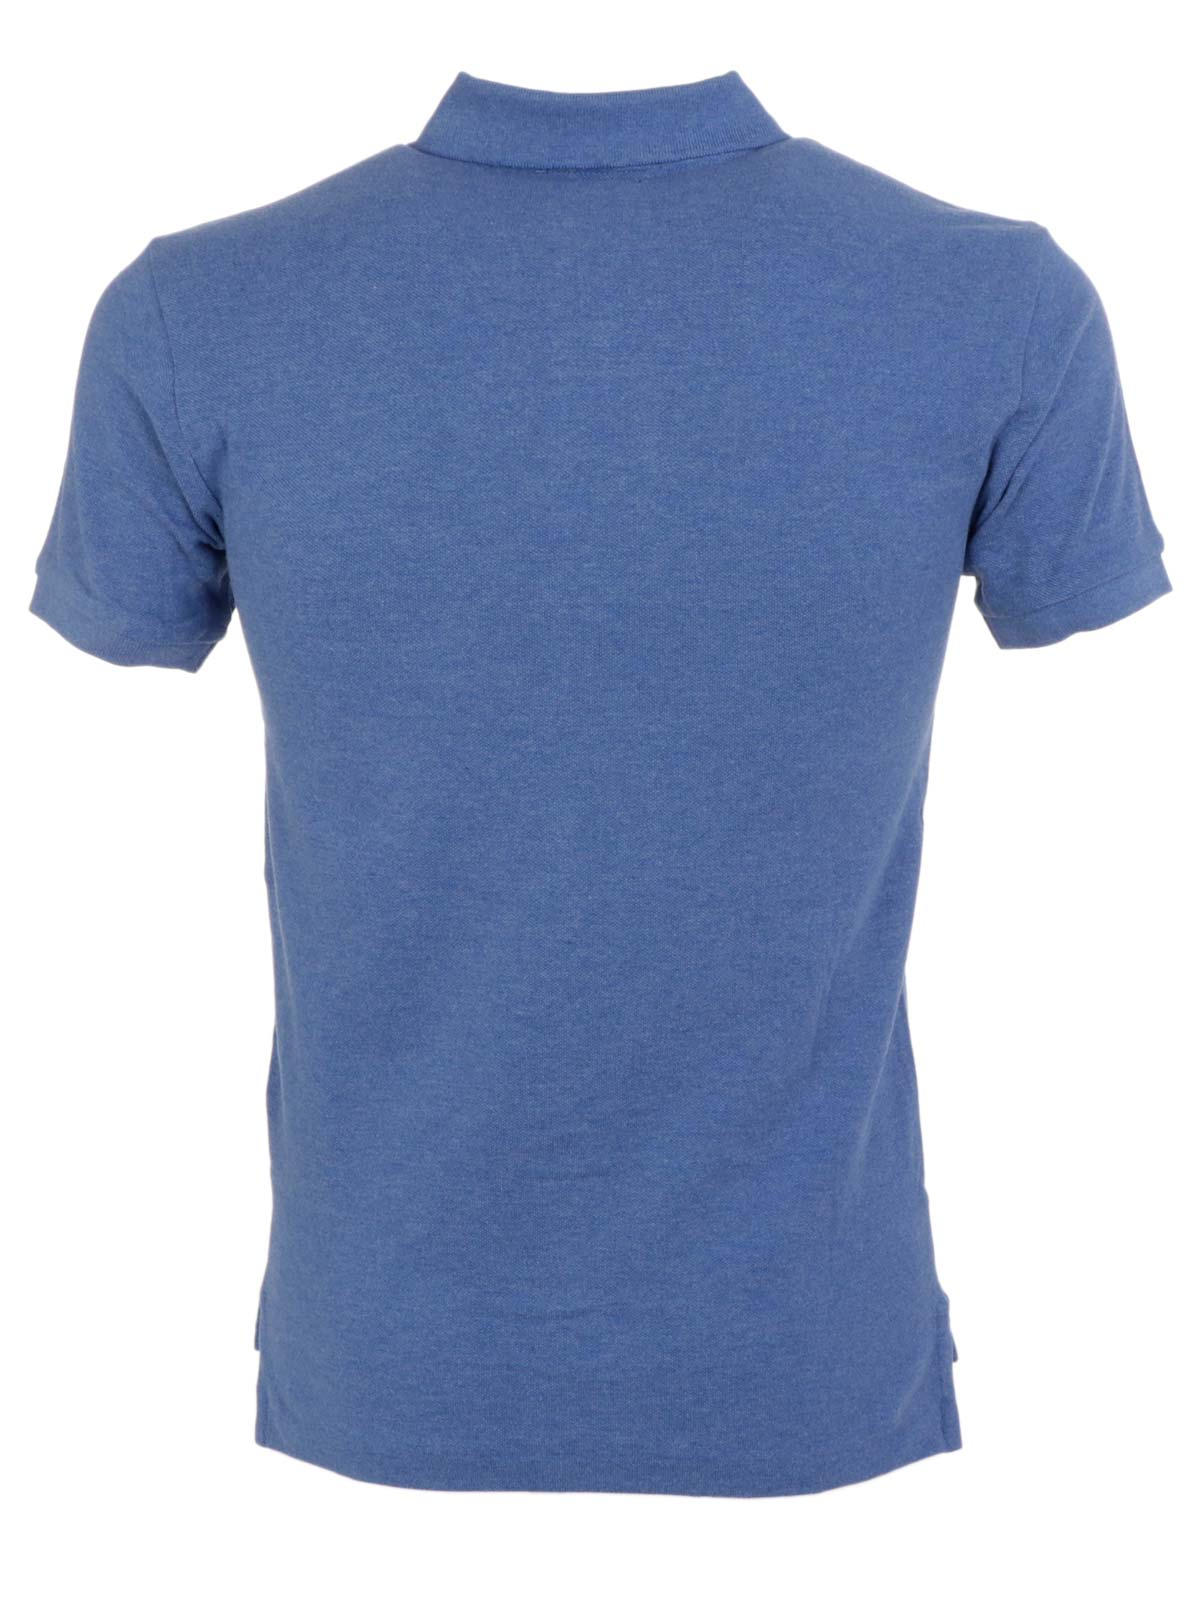 Picture of POLO RALPH LAUREN   Men's Slim Fit Polo Shirt